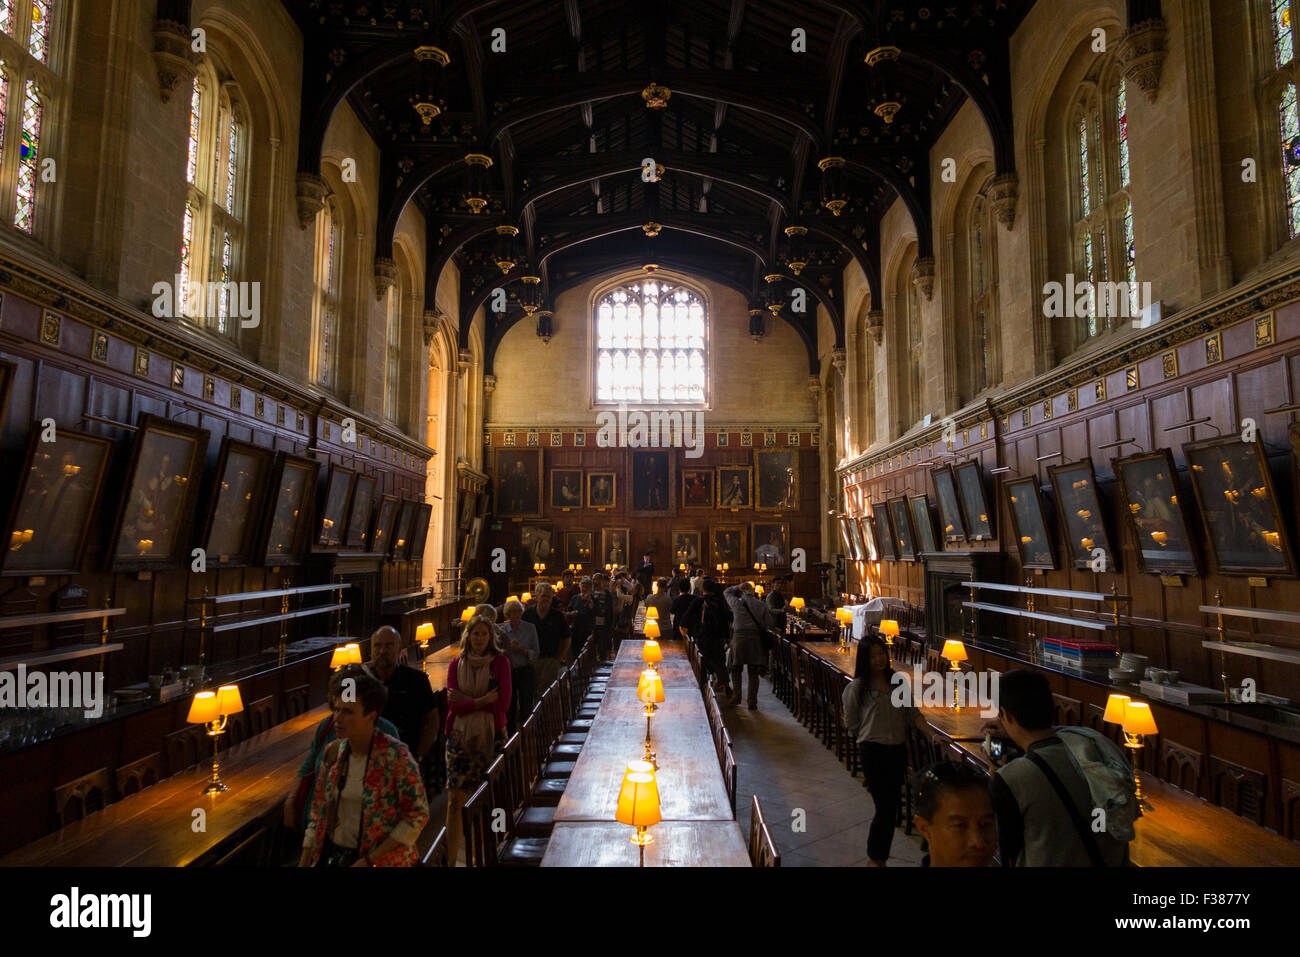 Inside Interior Of The Great Hall The Dining Hall